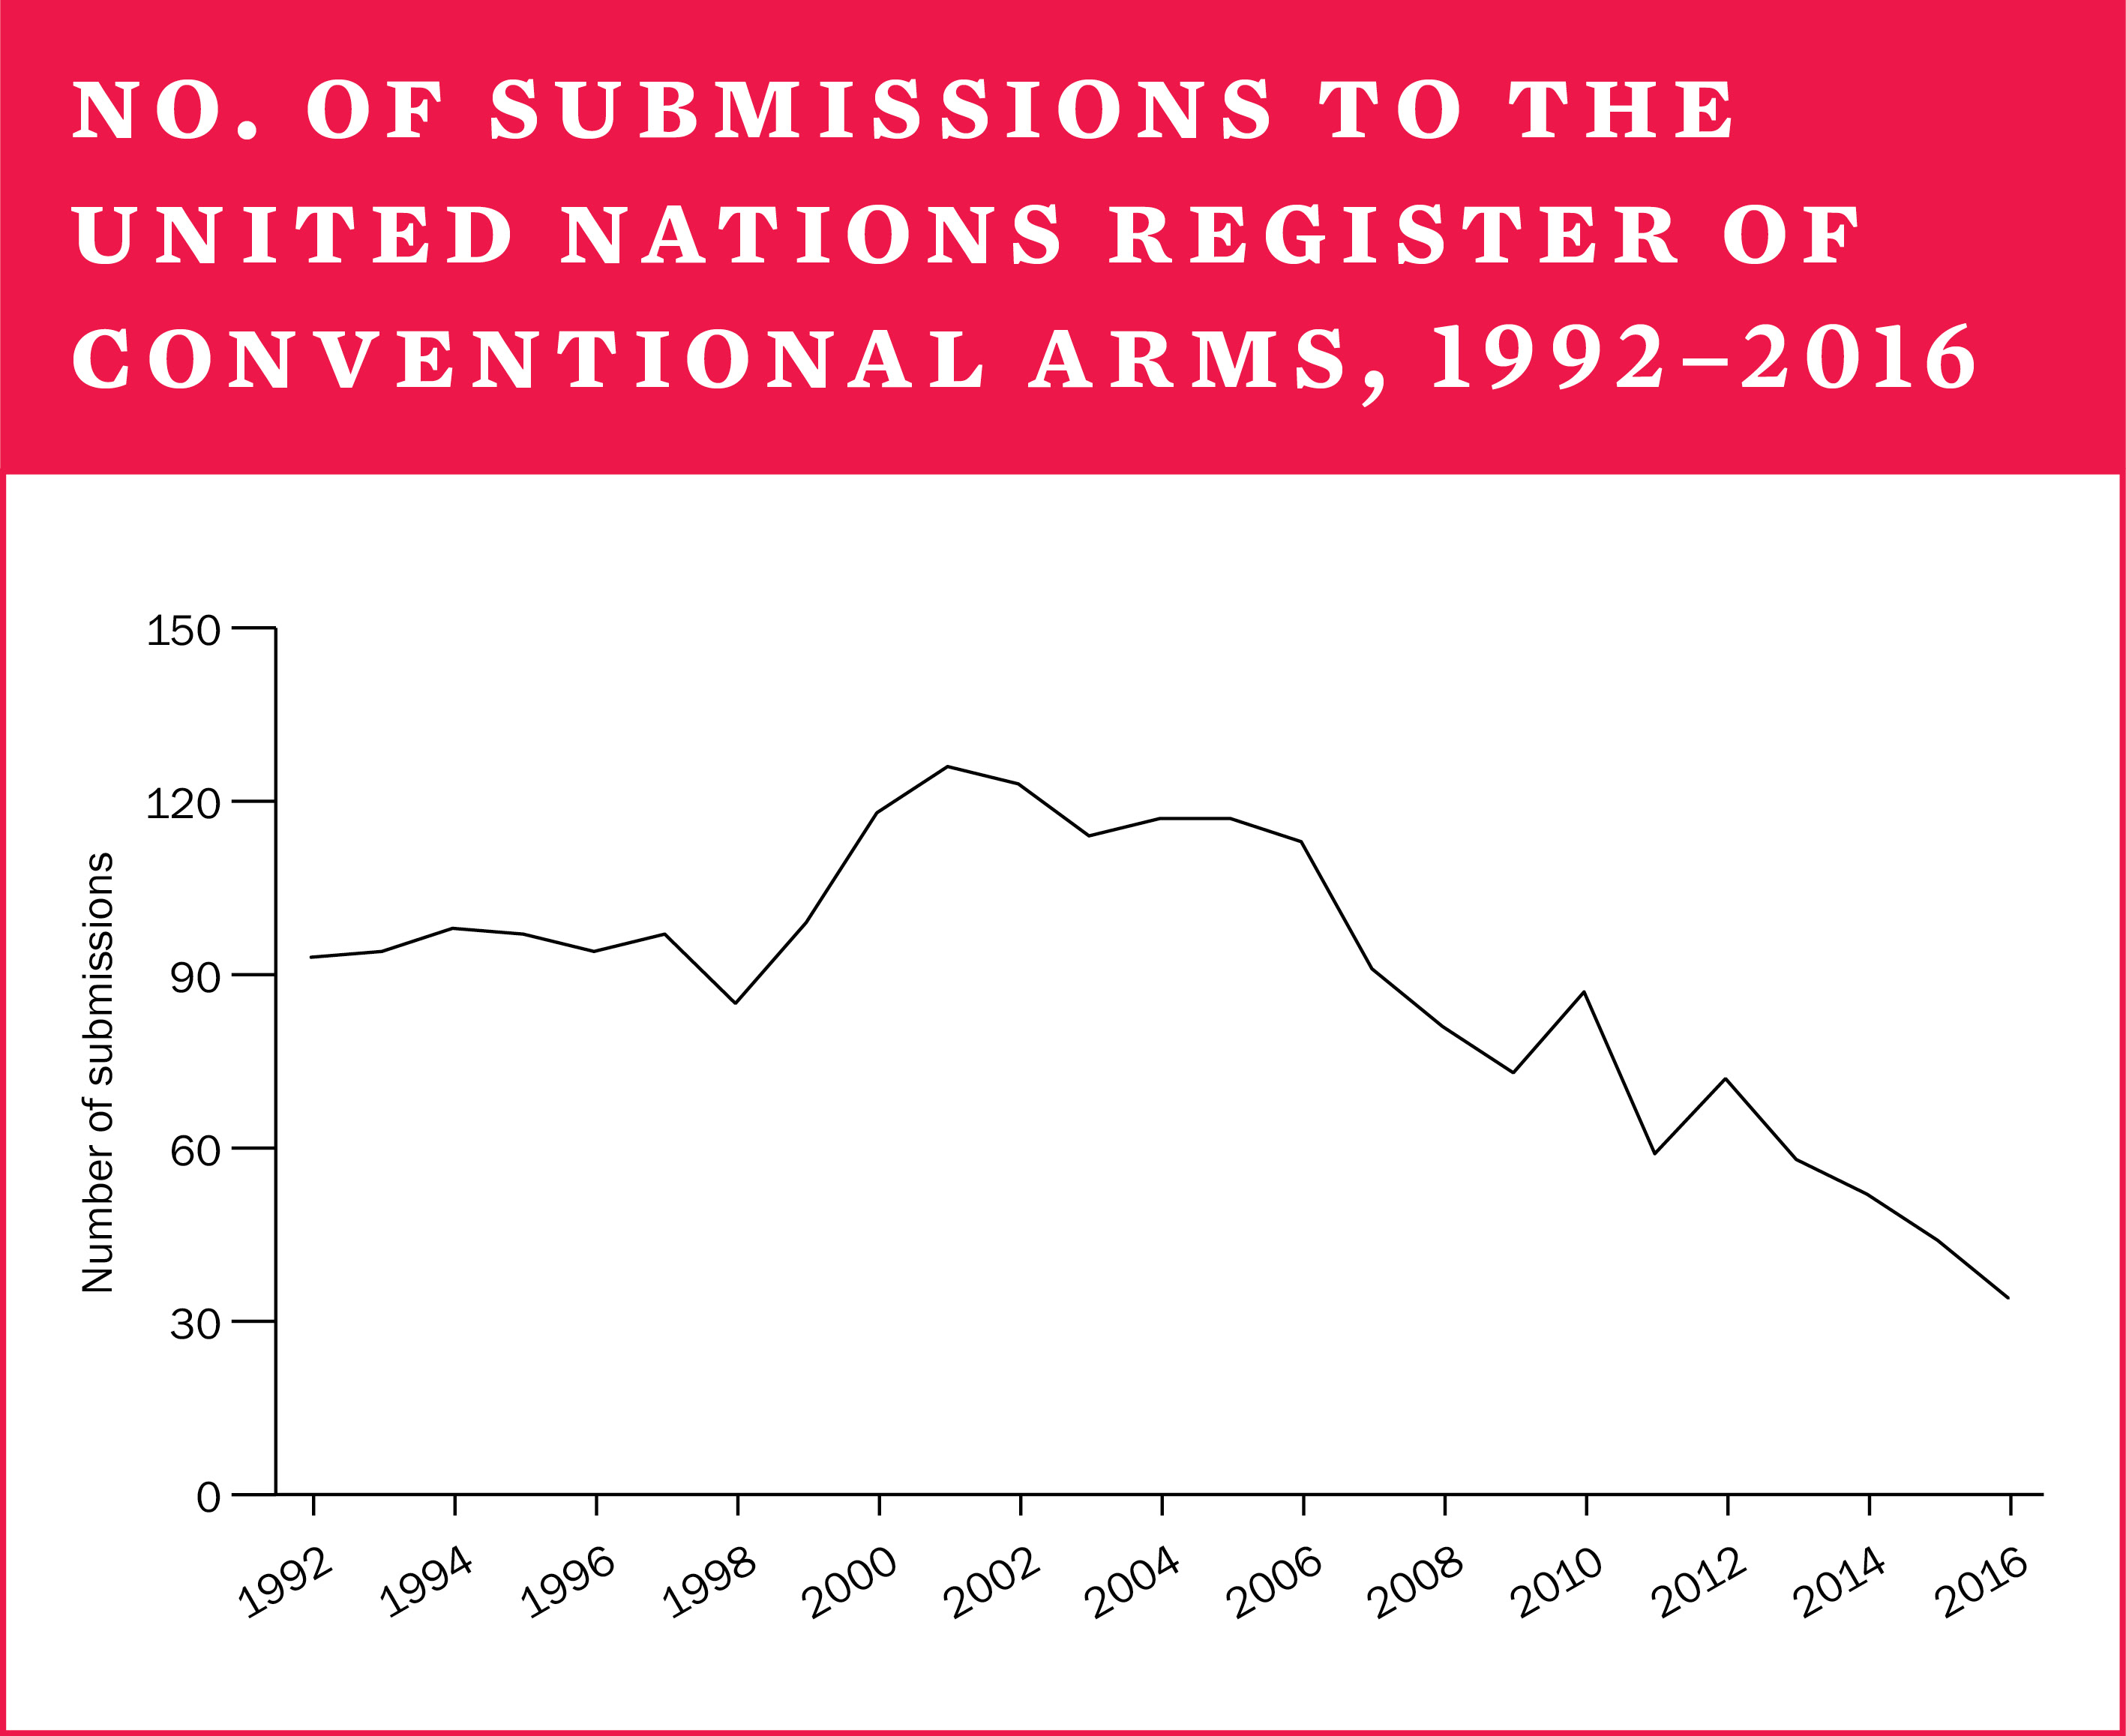 No. of submissions to the United Nations register of conventional arms, 1992-2016